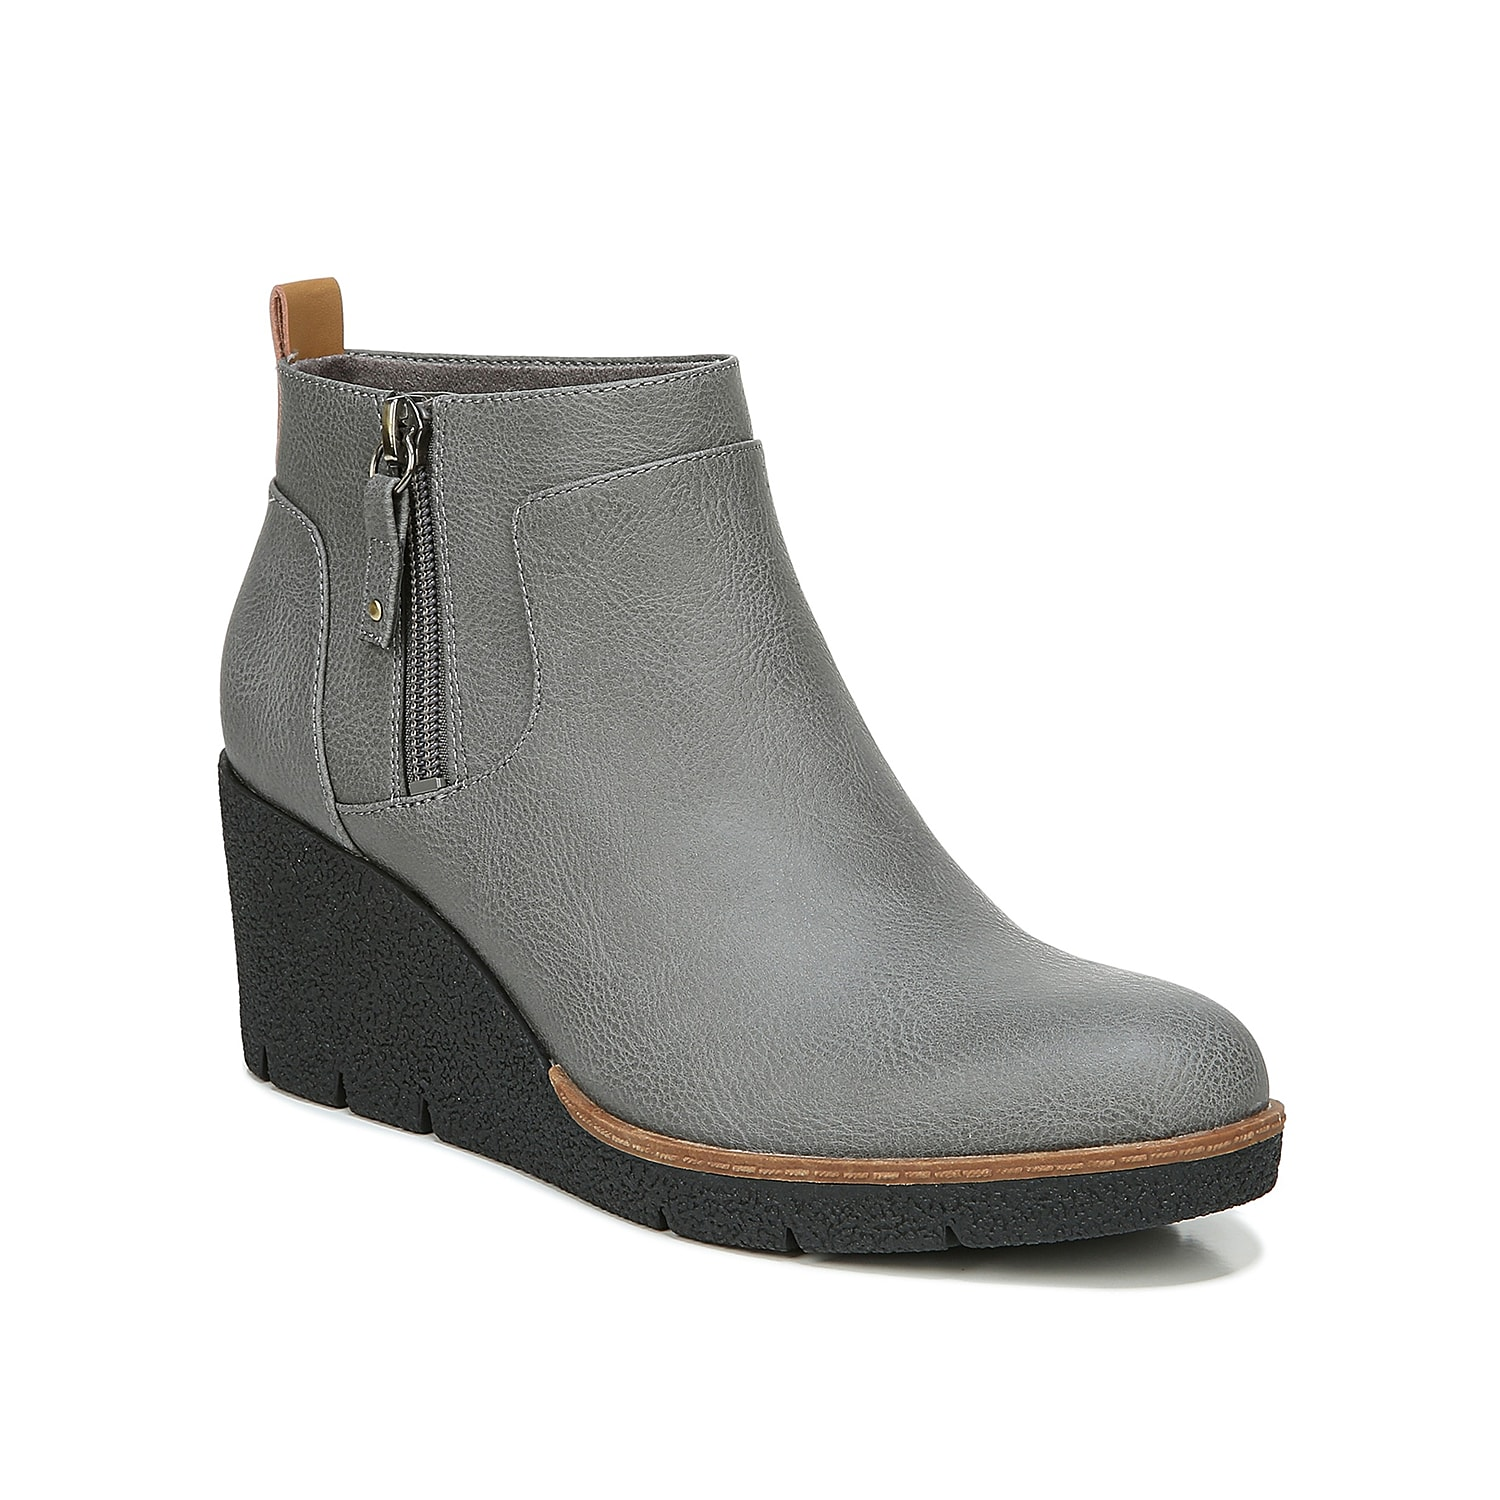 The Bianca bootie by Dr. Scholl\\\'s can seriously go well with a wide range of outfits. The eco-friendly faux leather upper is supported by an Insole Technology with anatomical cushioning and a solid wedge heel.Click here for Boot Measuring Guide.